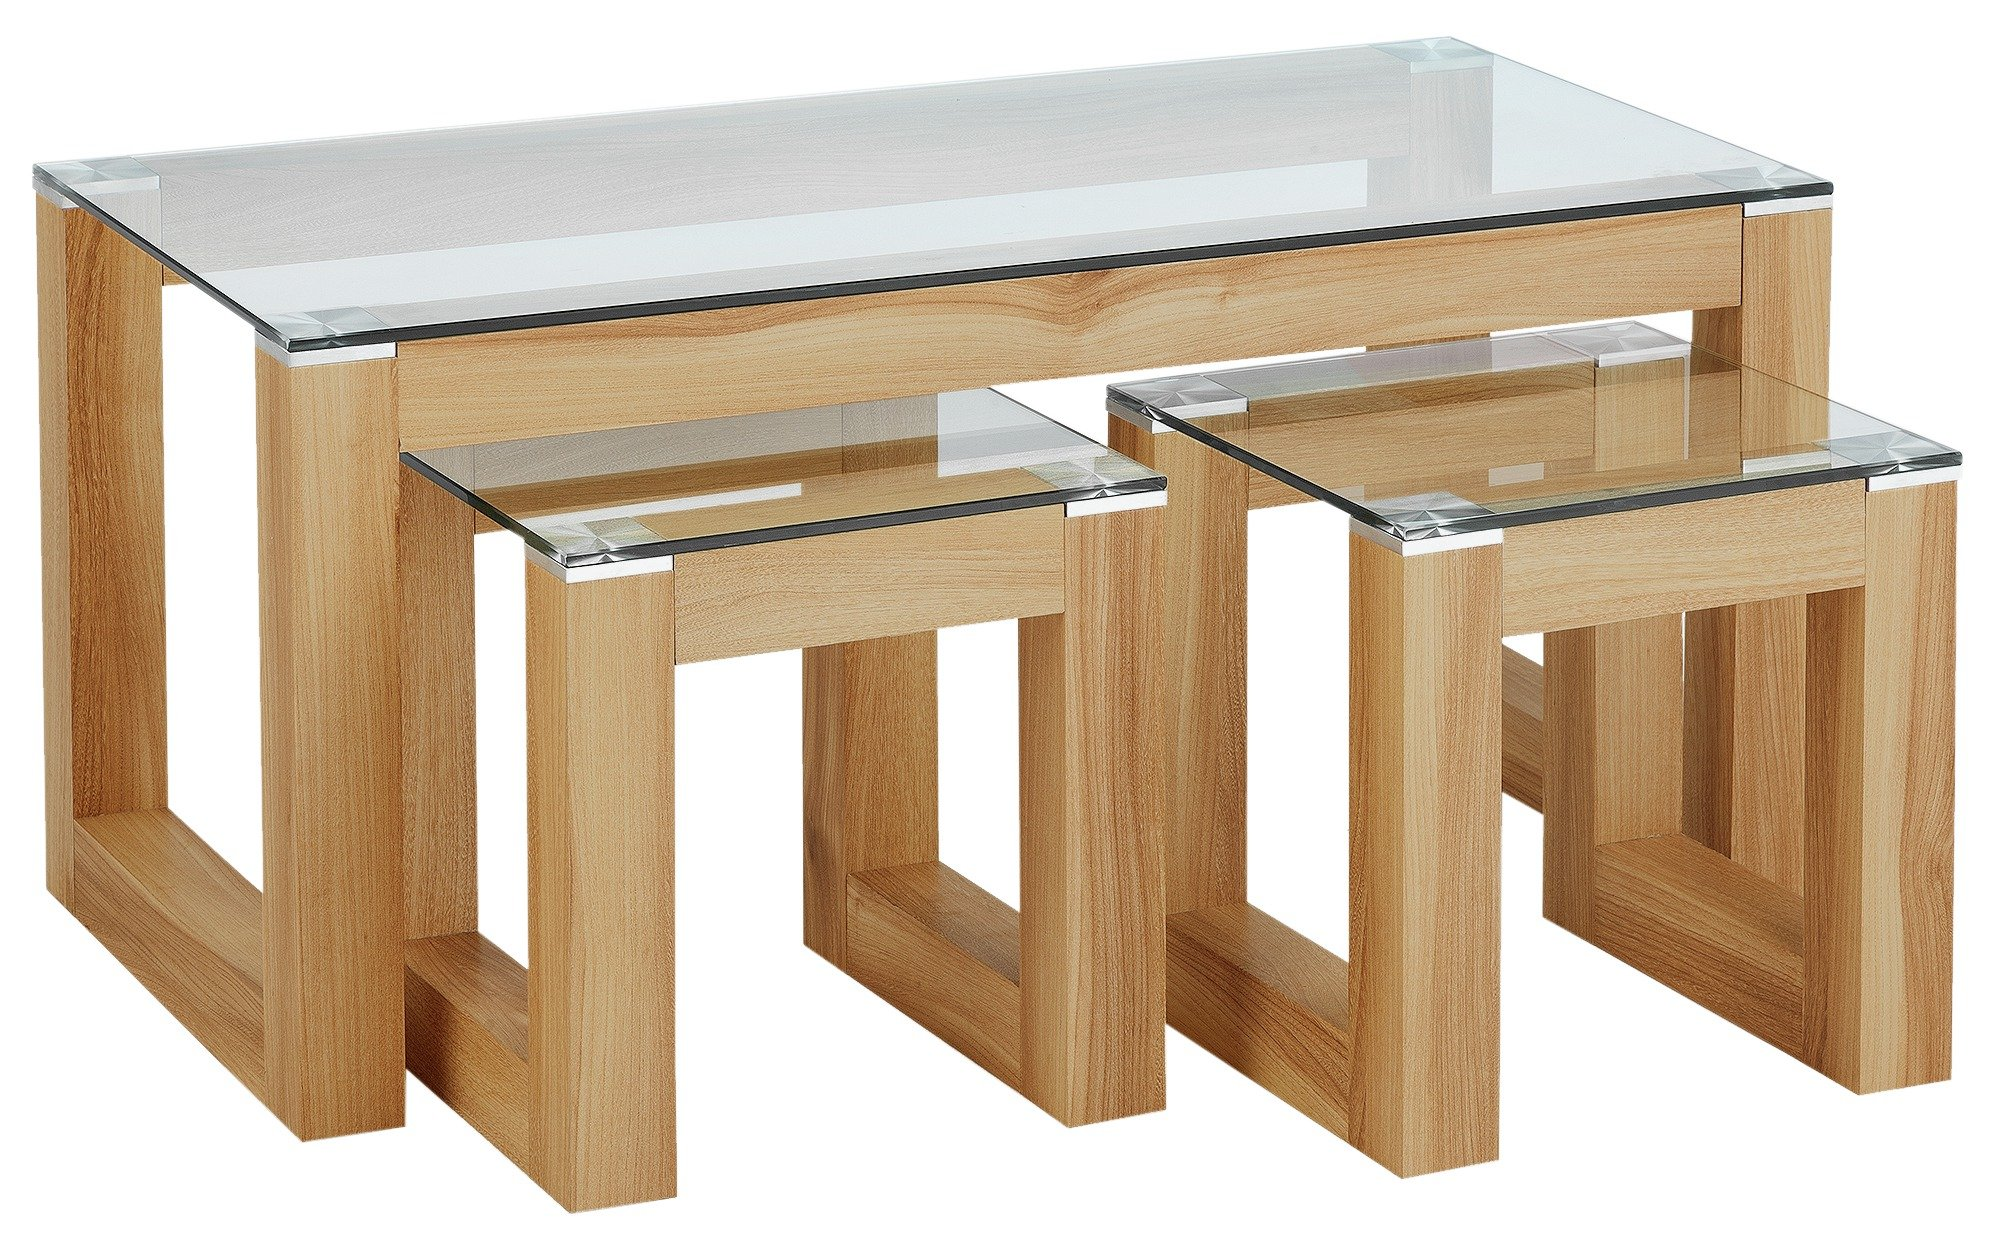 buy hygena cubic coffee table set with 2 side tables at argos.co